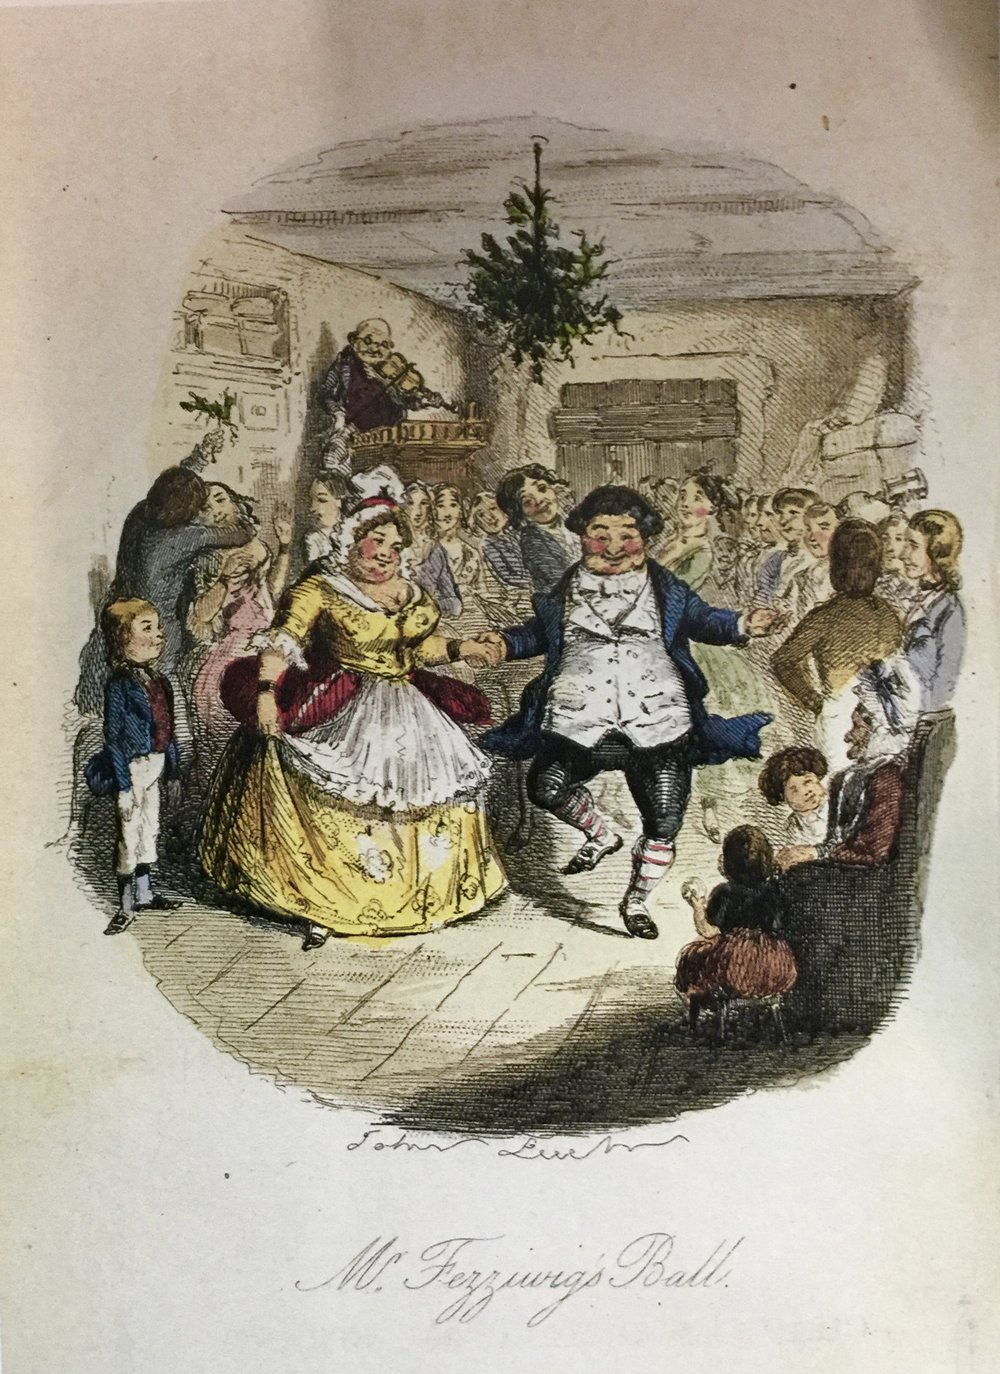 Join us December 19th, 2018 for a celebration of the 175th Anniversary ofA Christmas Carol at the Charles Dickens Museum of London with Lucinda Dickens Hawksley and friends….. - Festivities, holiday treats, tours, celebrations, readings, and museum talks to mark the special occasion!We will be giving a special talk about our global Macy's sponsored, modern theatrical production, as well as, our original Dickens education unit serving children in shelters, Your Stories Matter.See you in London and thank you for being the best part of what we do!